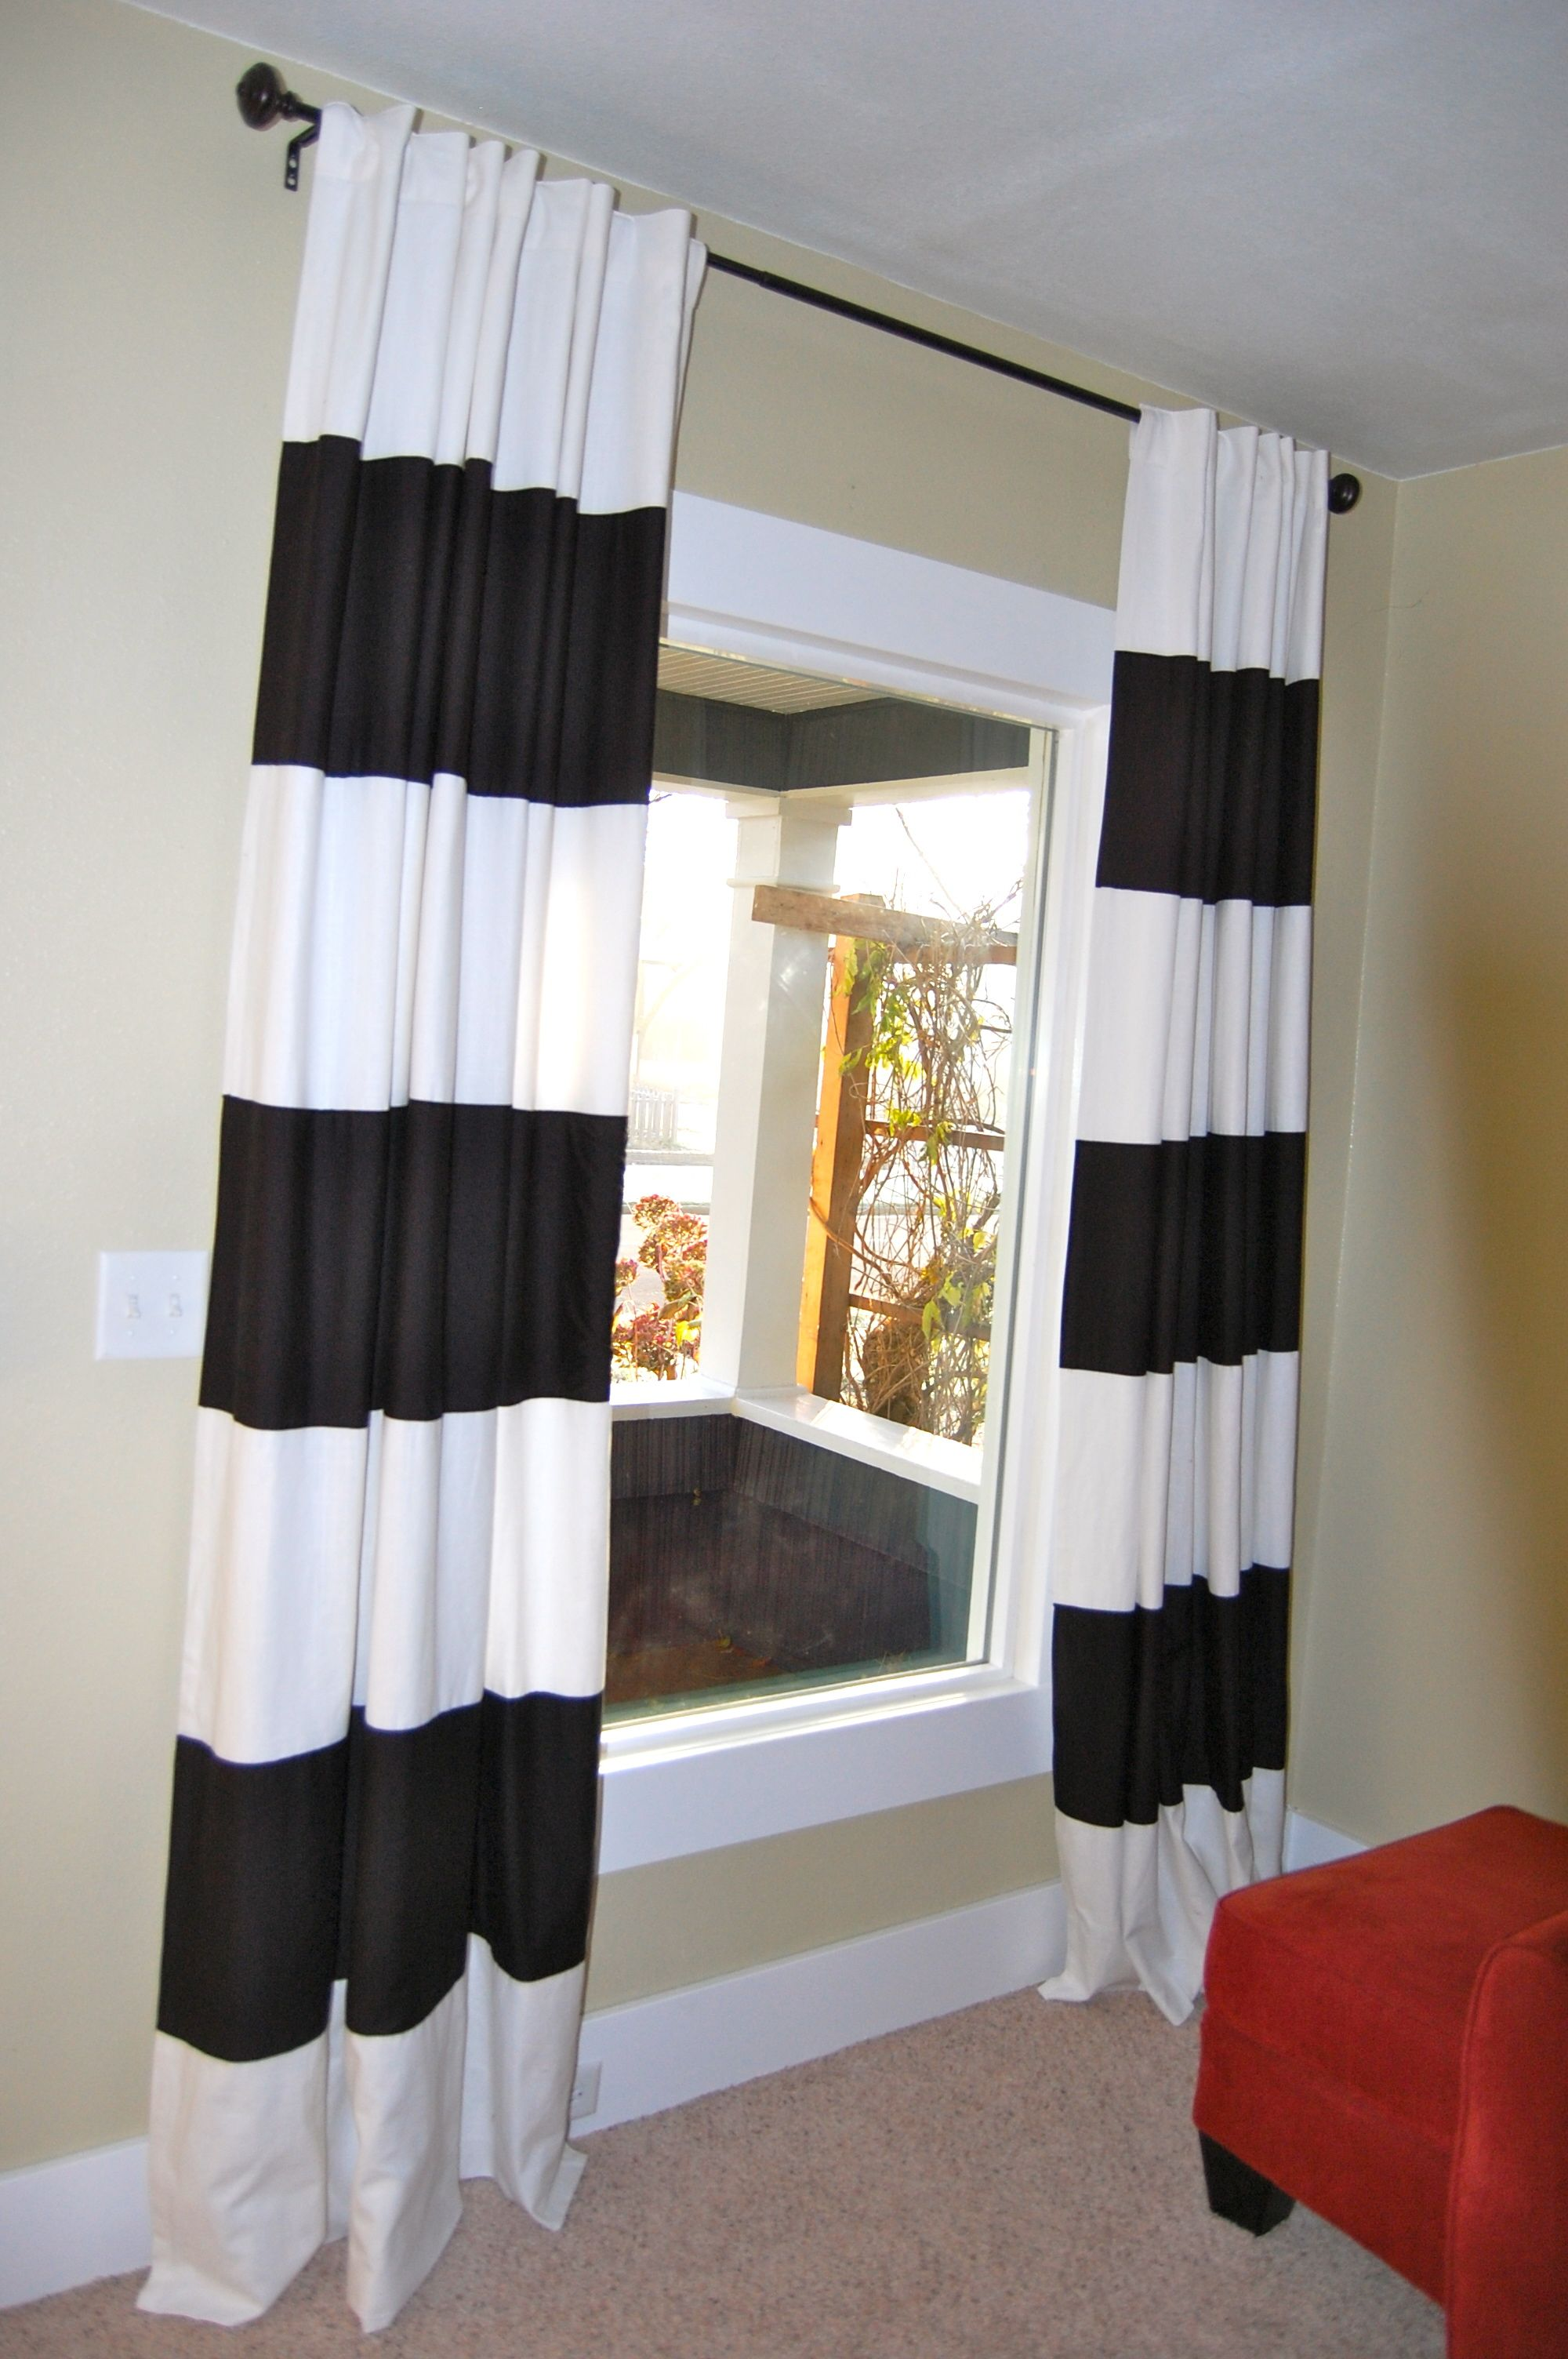 Design Black And White Striped Curtains diy black white striped curtains curtains